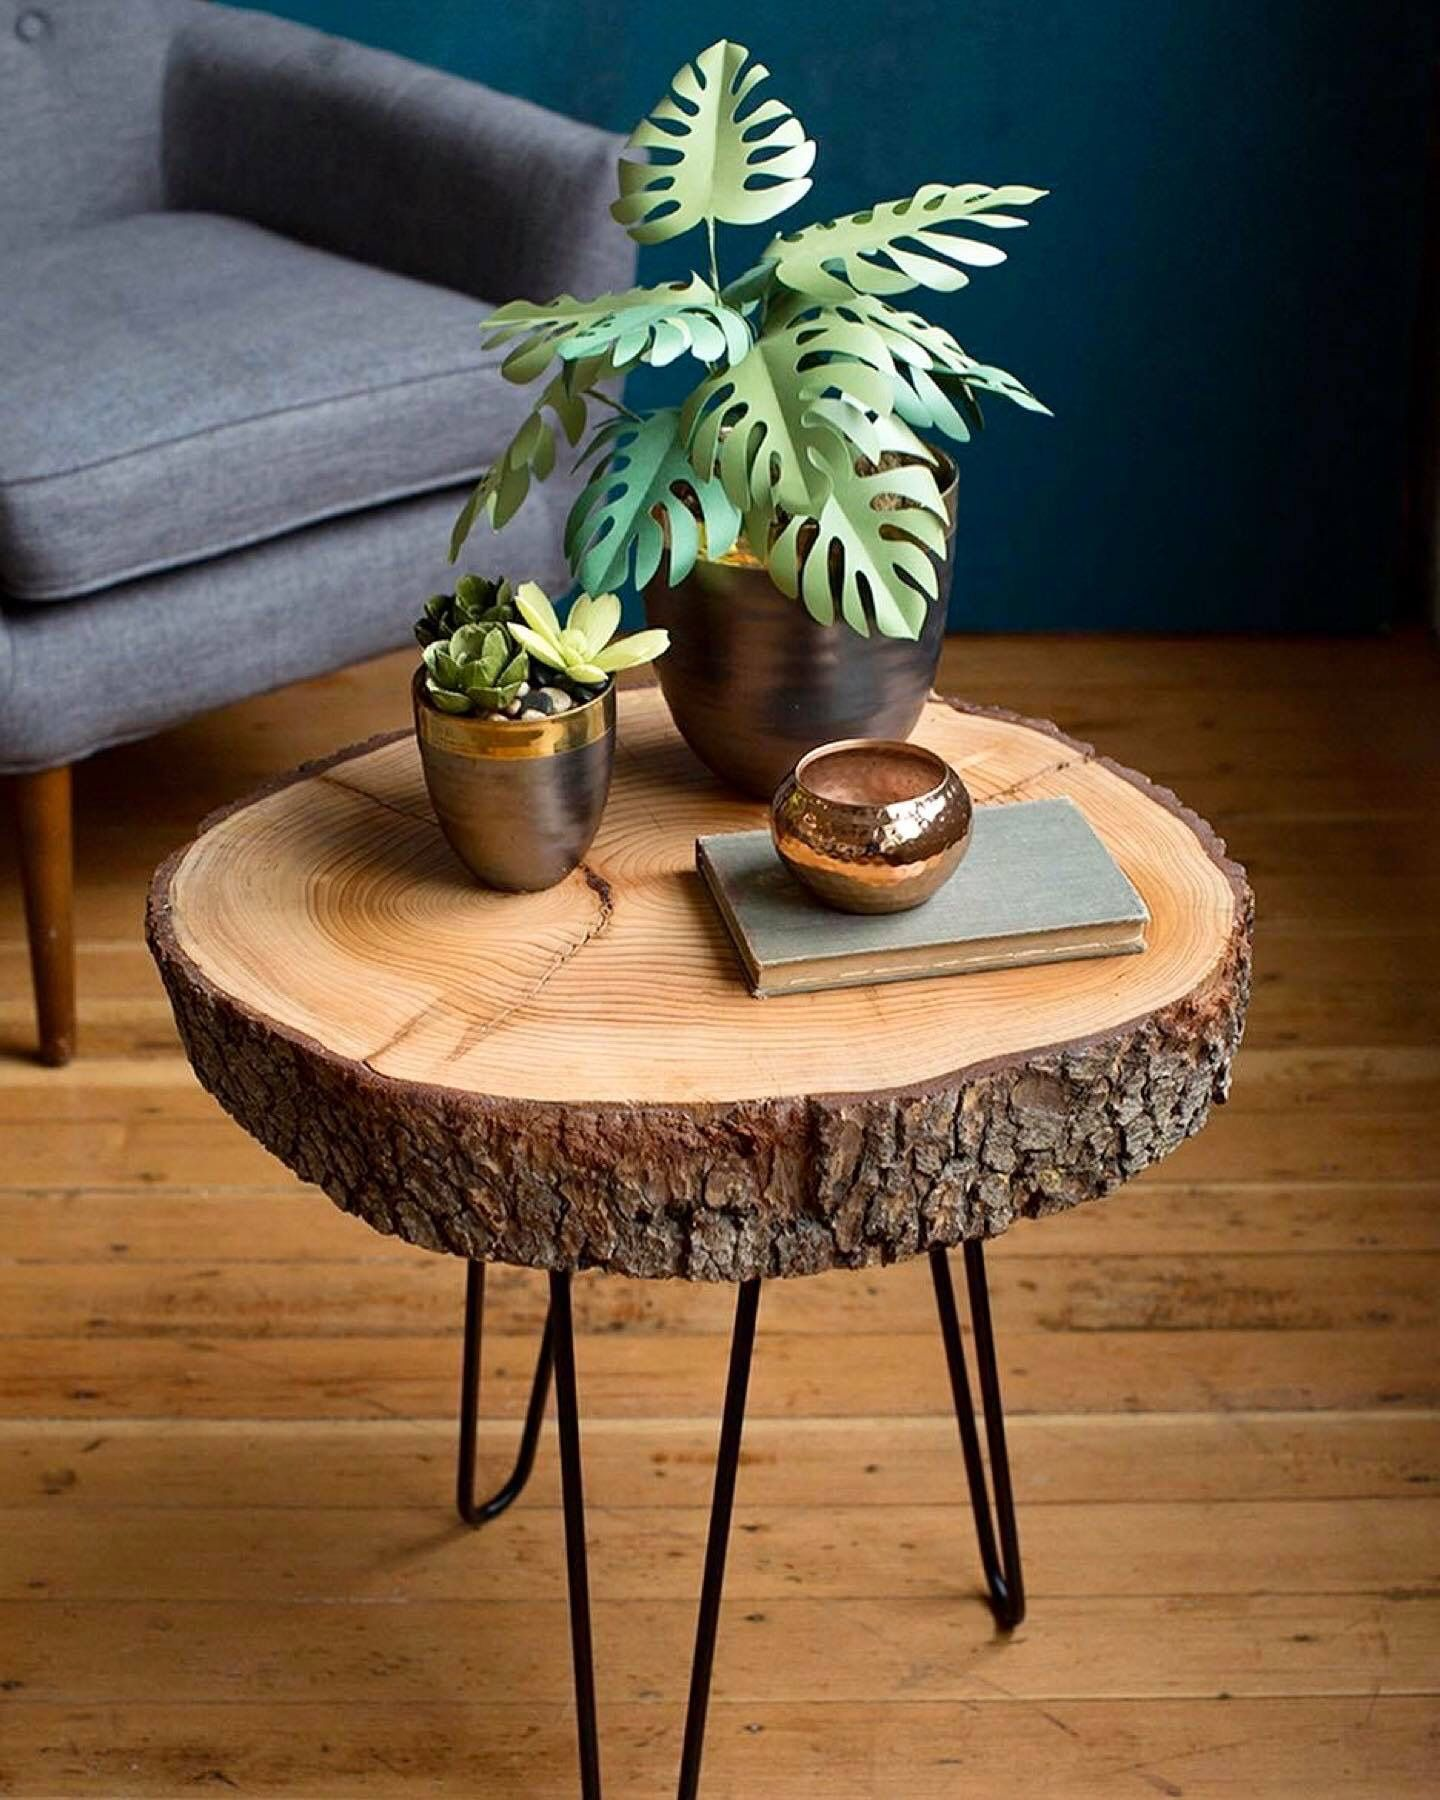 Pin By Holly Humphlett On Diy Wood Coffee Table Diy Wood Diy Wooden Projects [ 1800 x 1440 Pixel ]